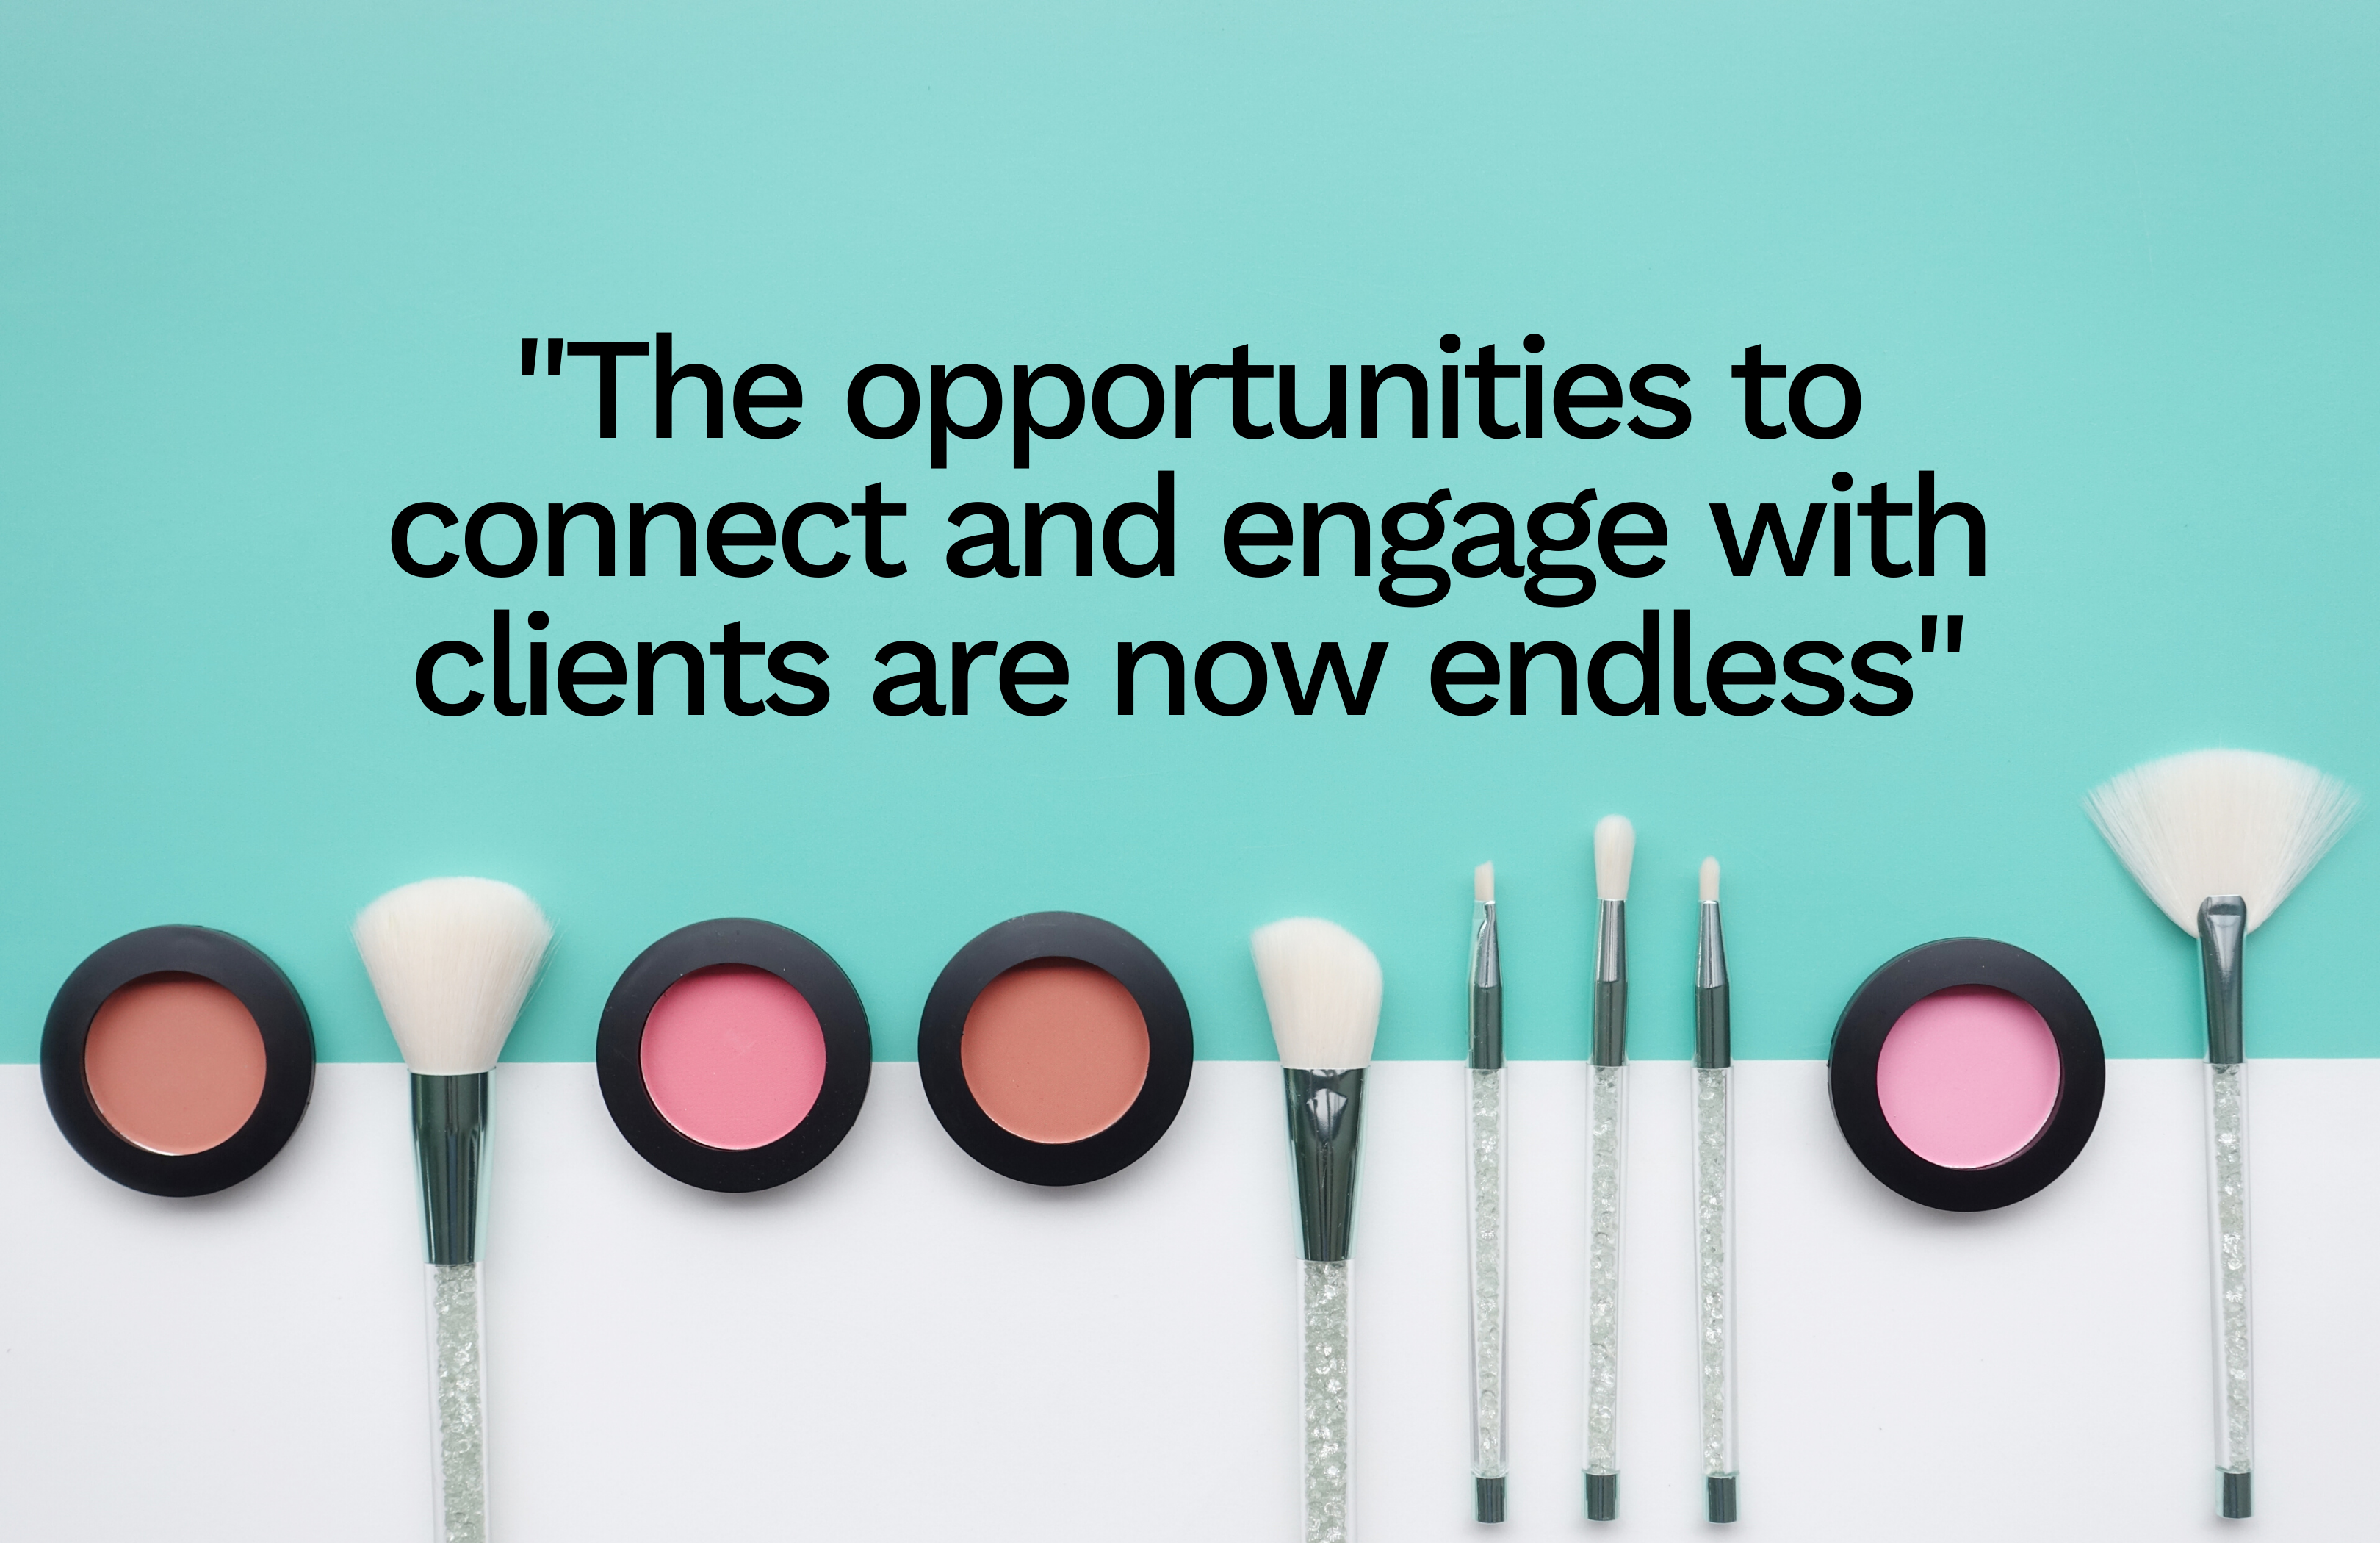 The opportunities to connect and engage with clients are now endless